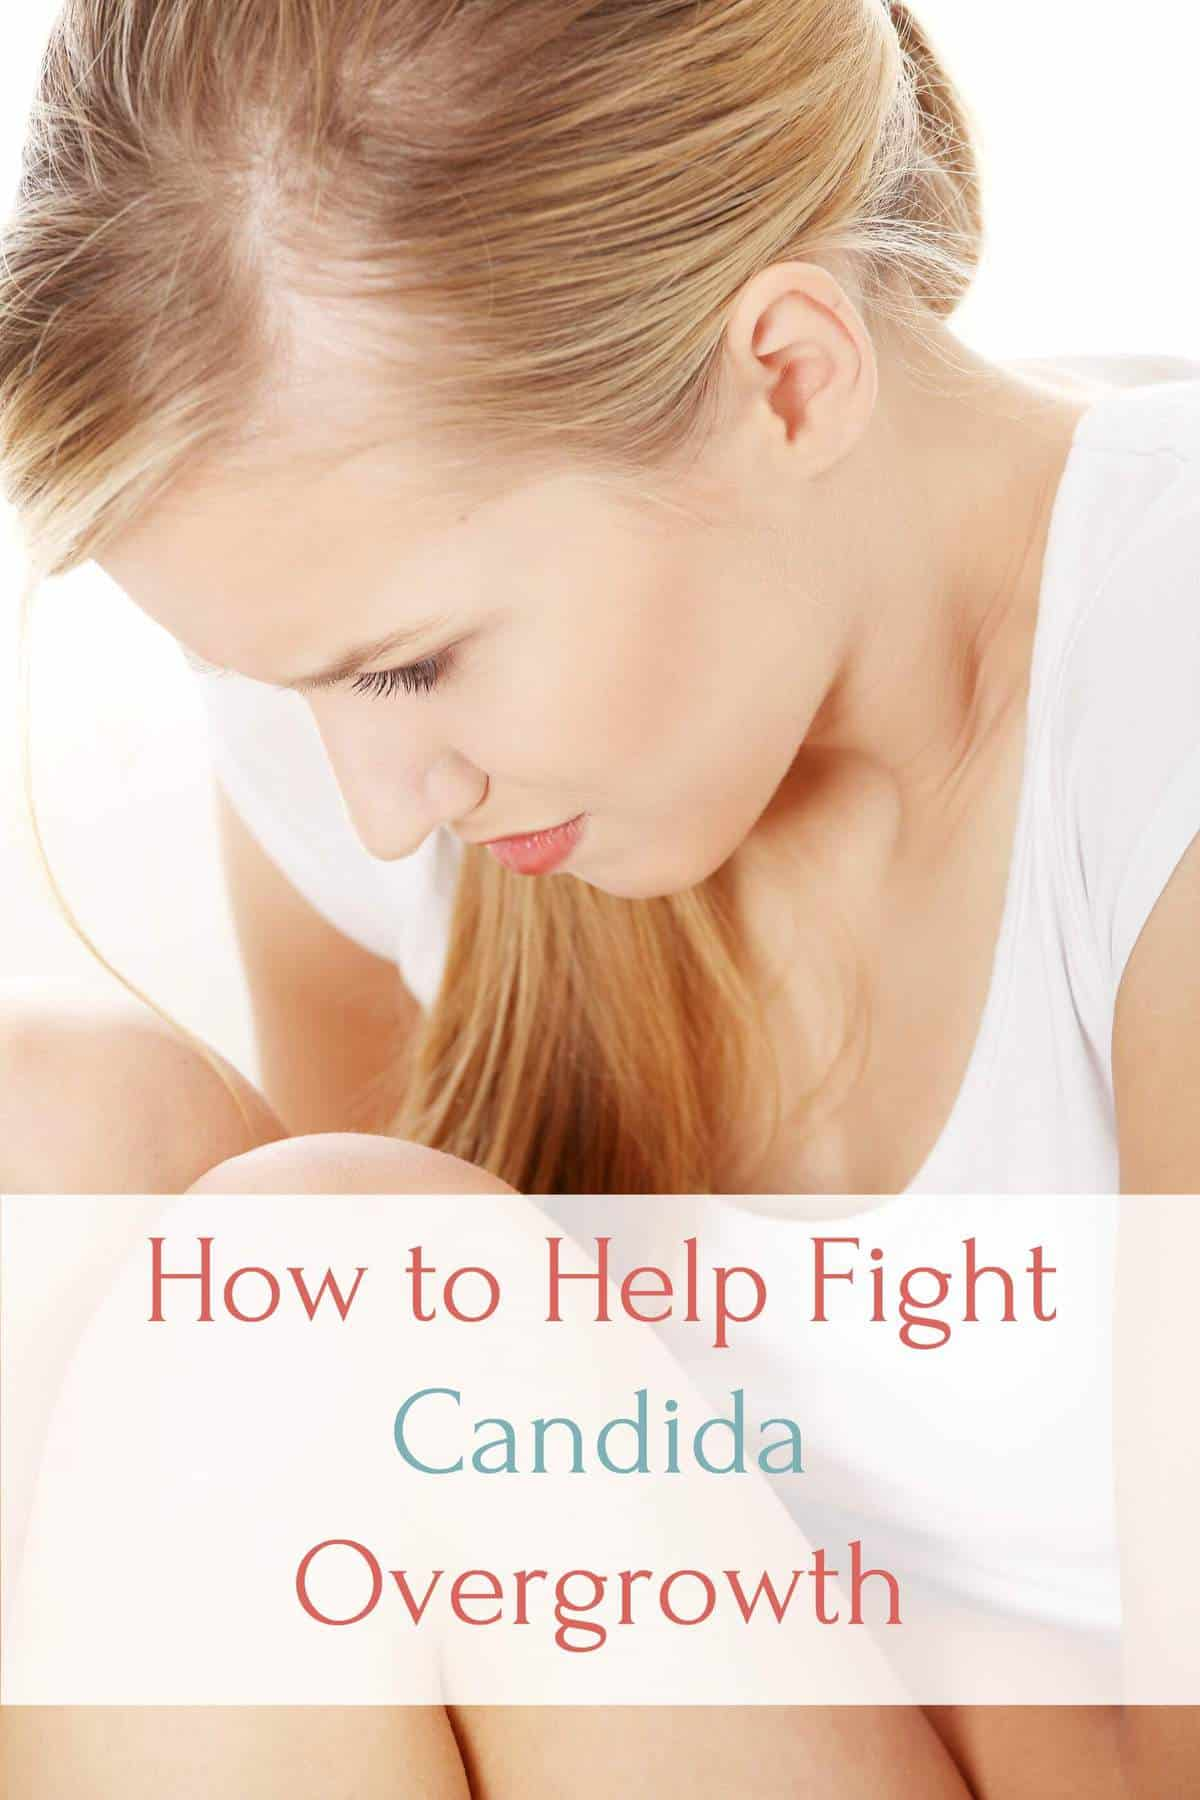 How to Help Fight Candida Overgrowth | Healthy Living in Body and Mind